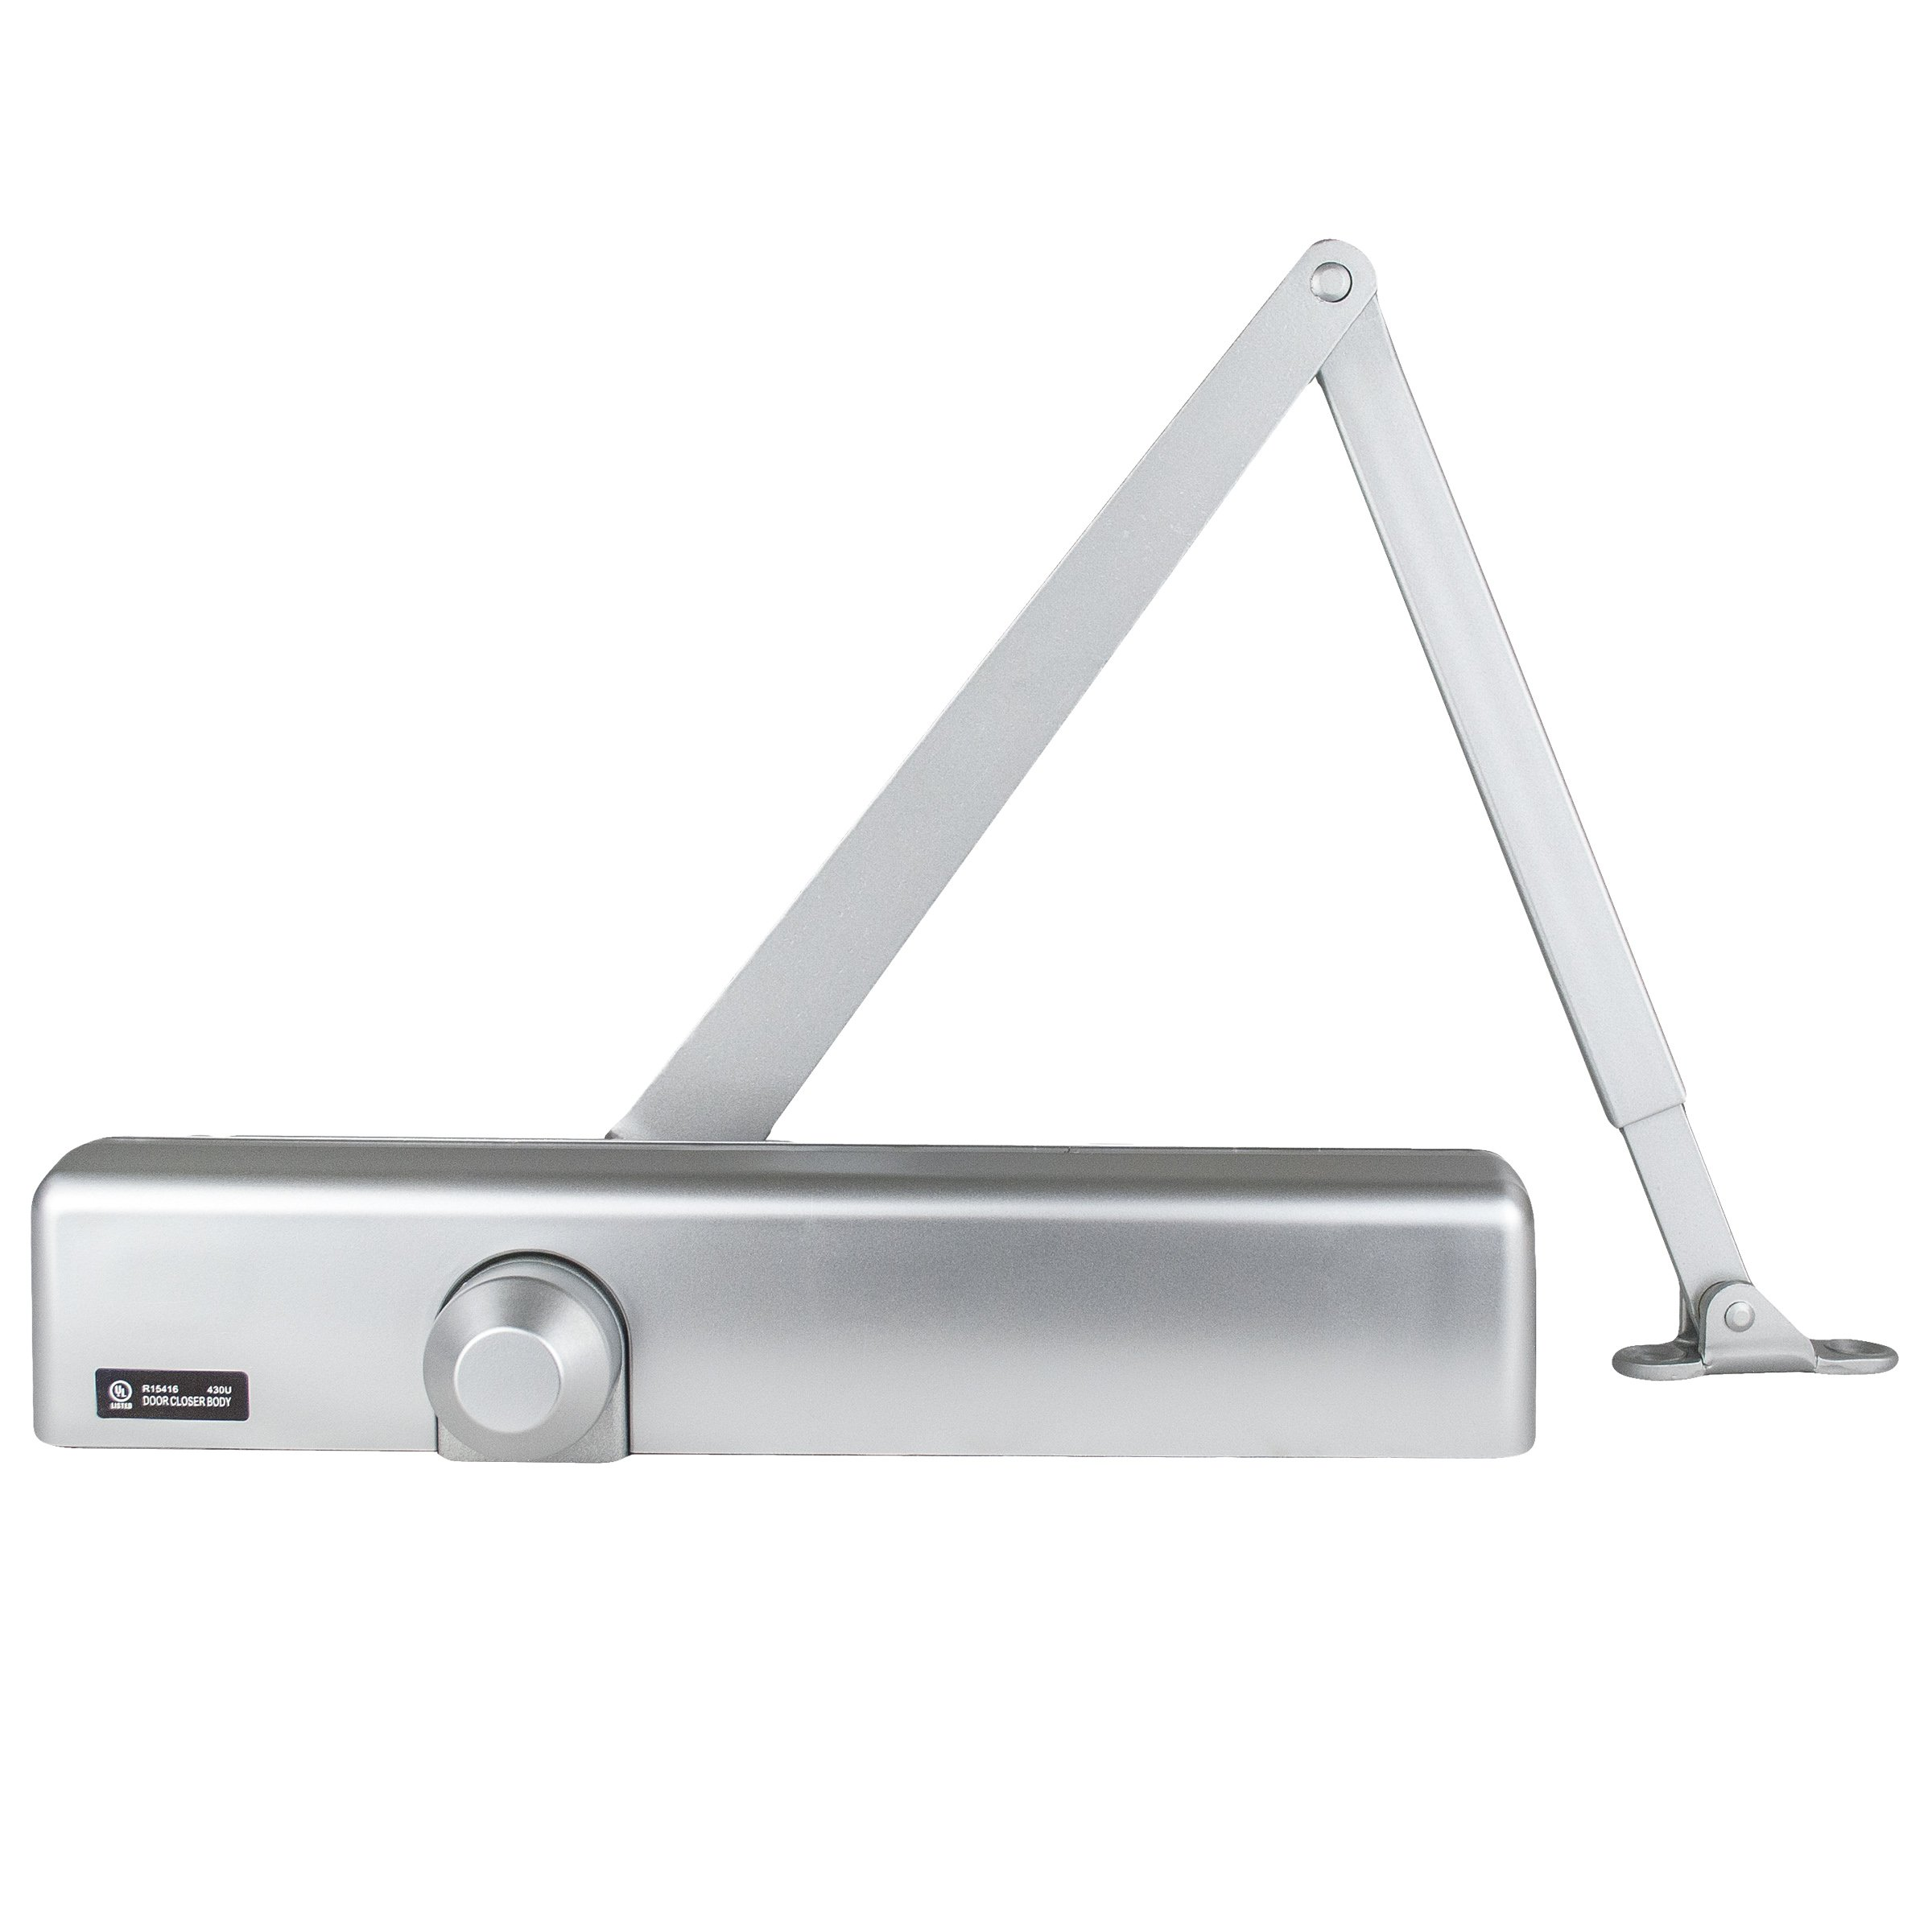 Global Door Controls Slimline Heavy Duty Commercial Door Closer in Aluminum - Sizes 1-6